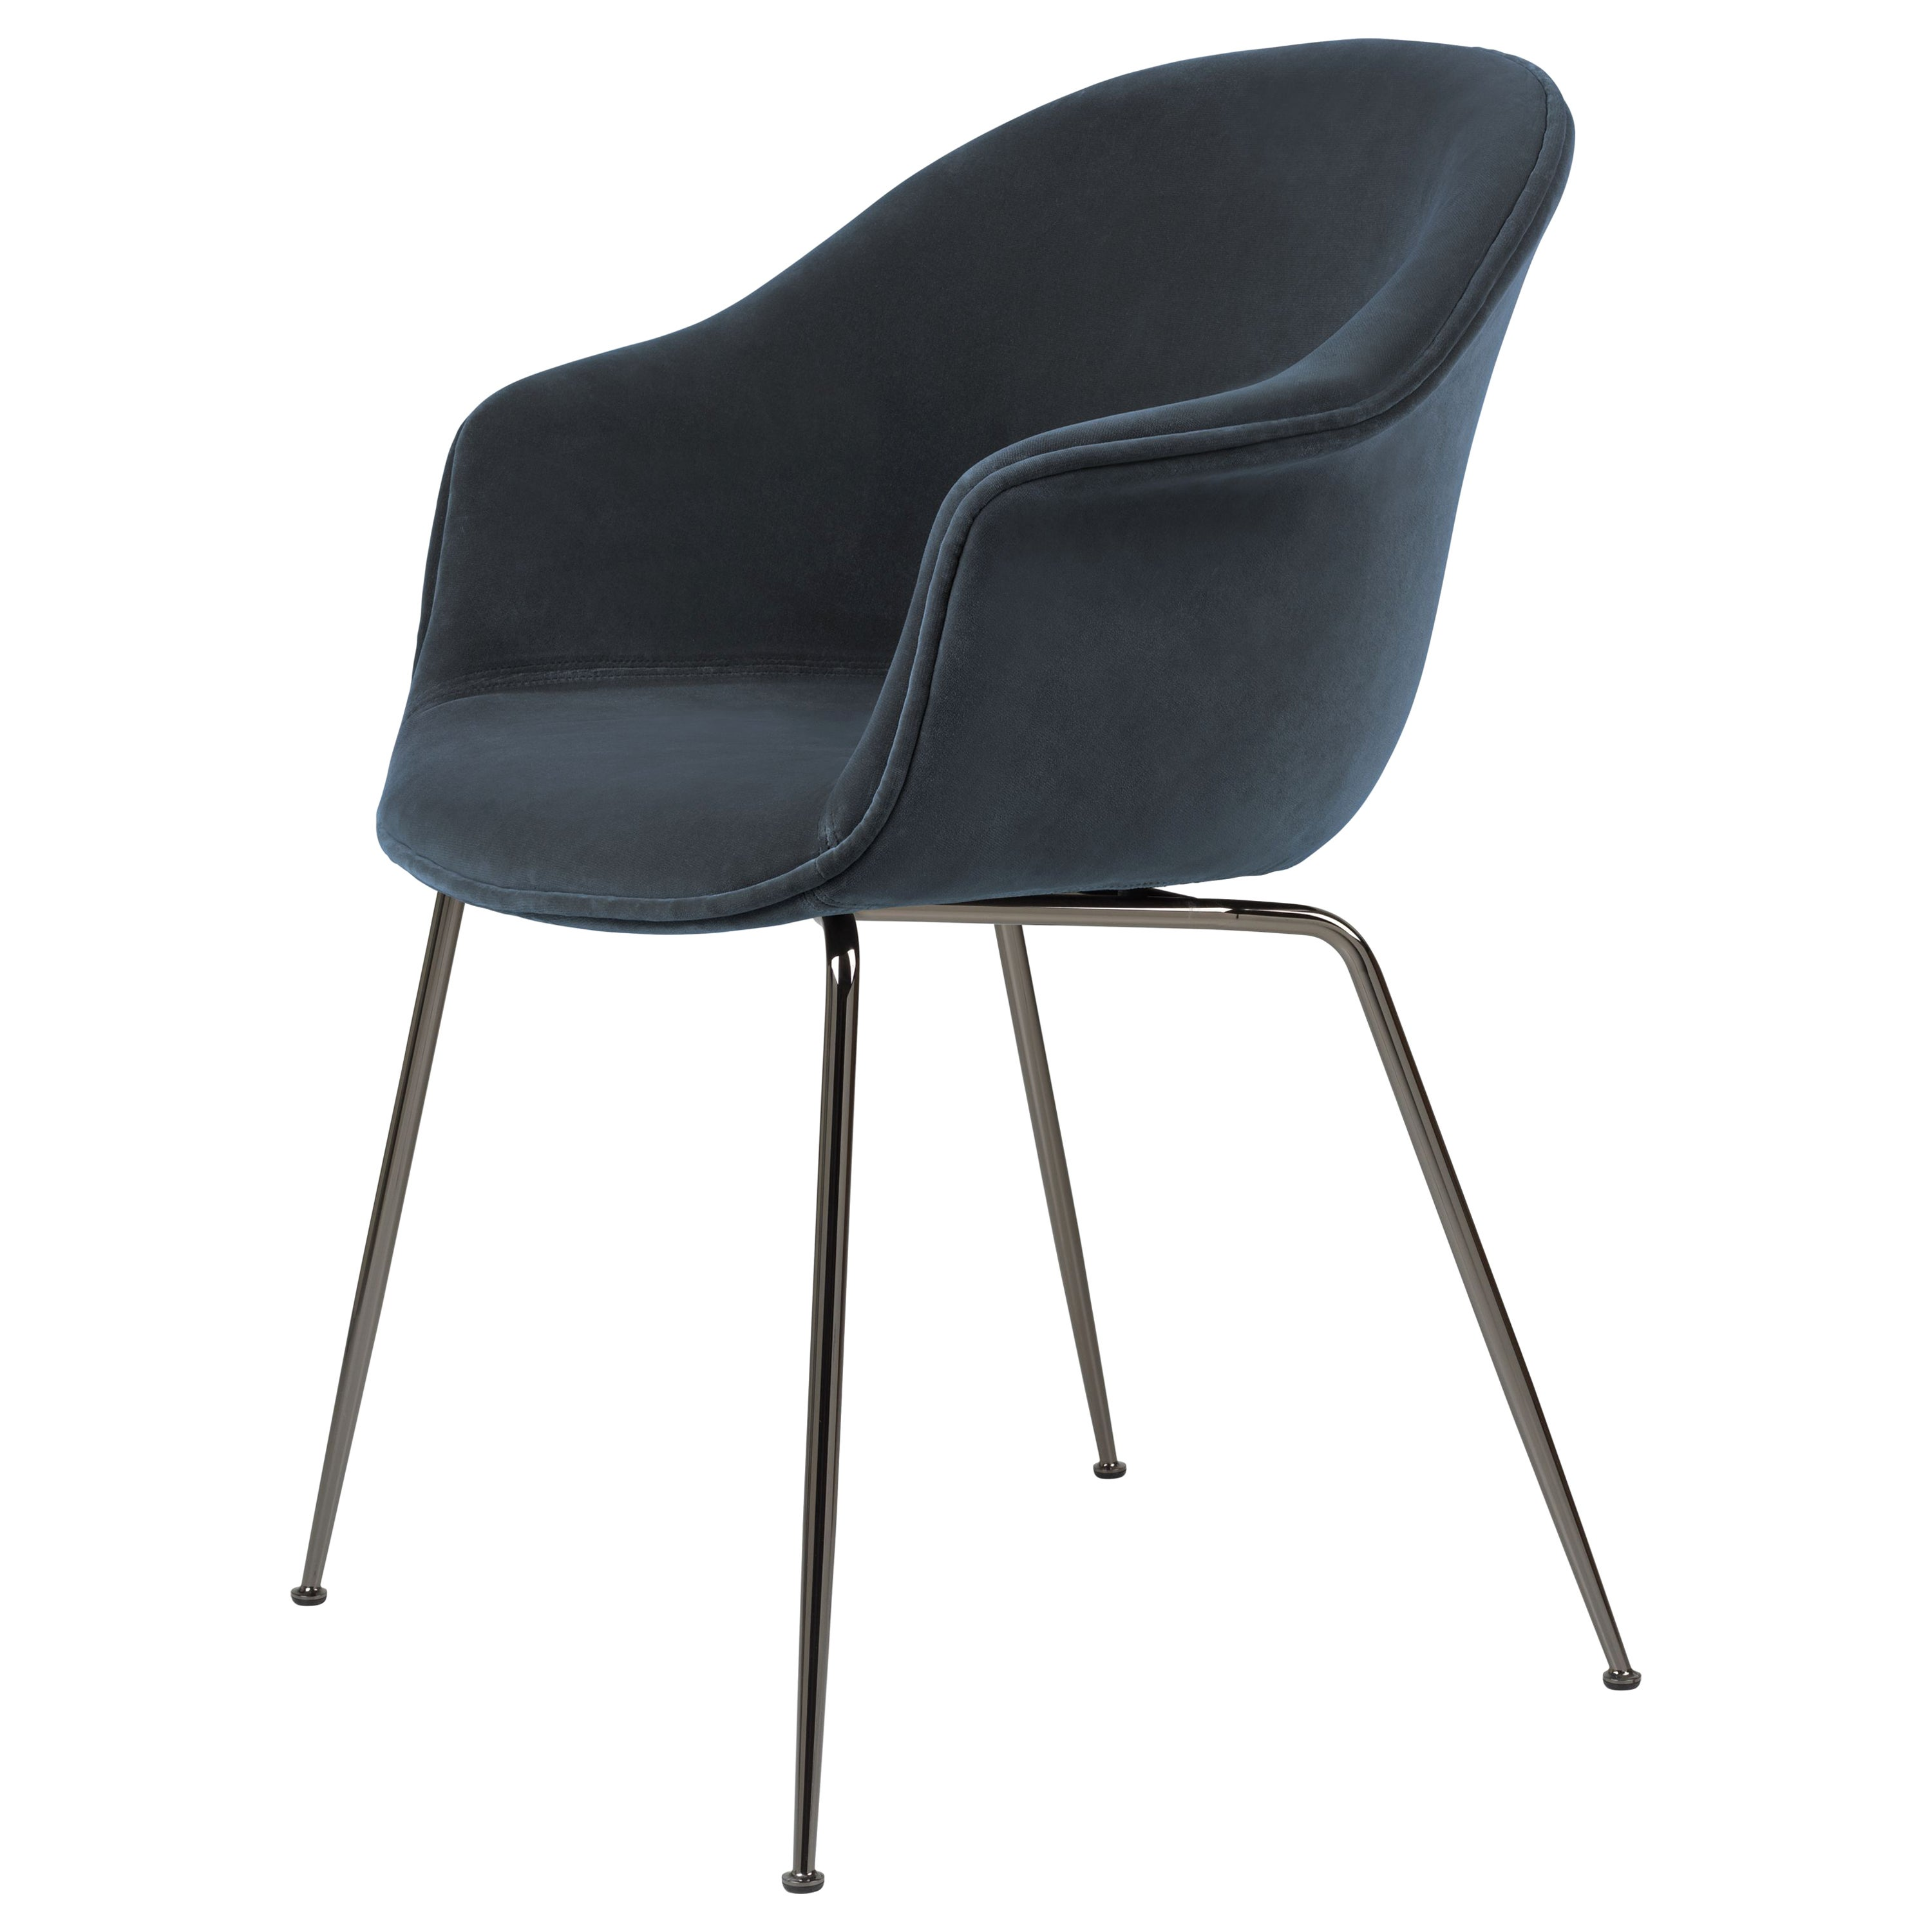 GamFratesi 'Bat' Dining Chair in Navy with Black Chrome Conic Base